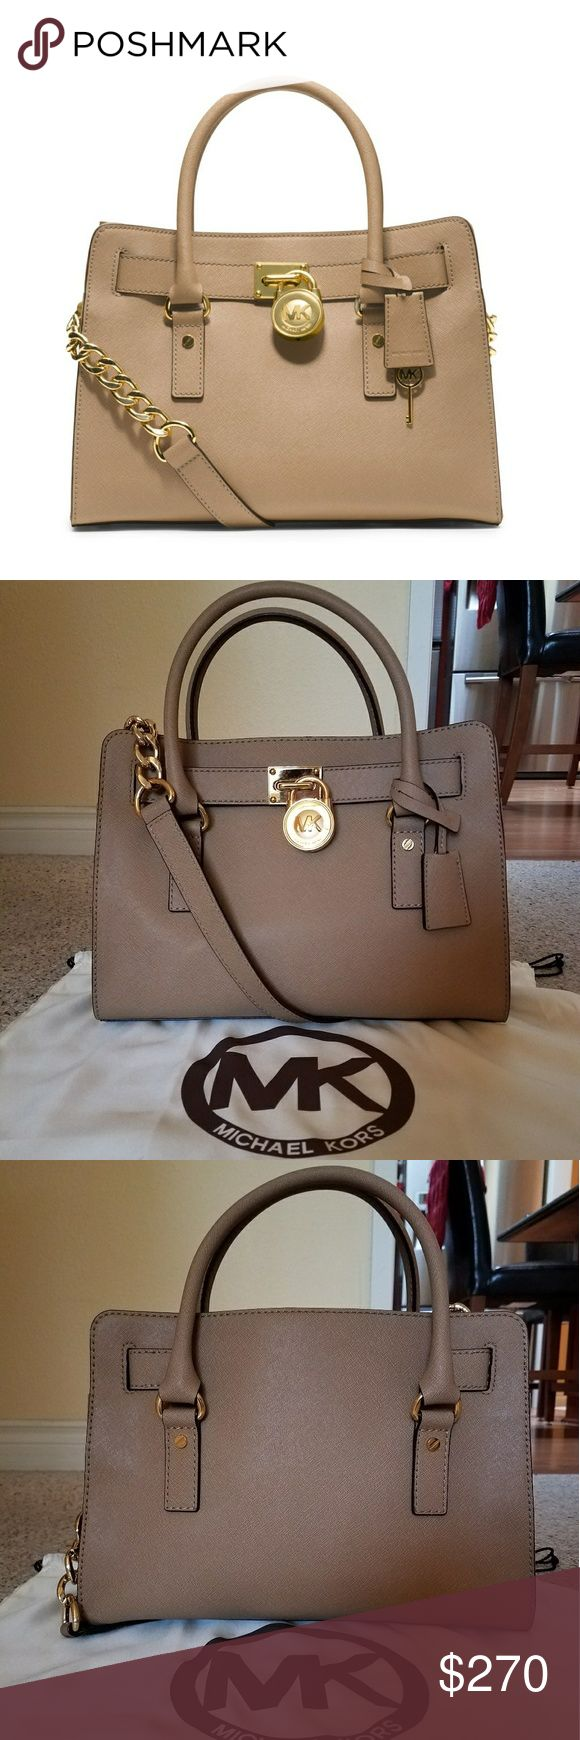 Michael Kors Medium Hamilton Satchel Dark Khaki Medium Hamilton Satchel With Gold Hardware. Saffiano Leather And Has Been Cleaned And Sealed With Michael Kors Water And Dirt Repellent.   Bag Has Two Handles With One Non-Removable Shoulder Strap. Interior Has One Zipper Pocket And Two Small Open Pockets. Magnetic Close. Dust Bag Included. In excellent condition! Michael Kors Bags Satchels